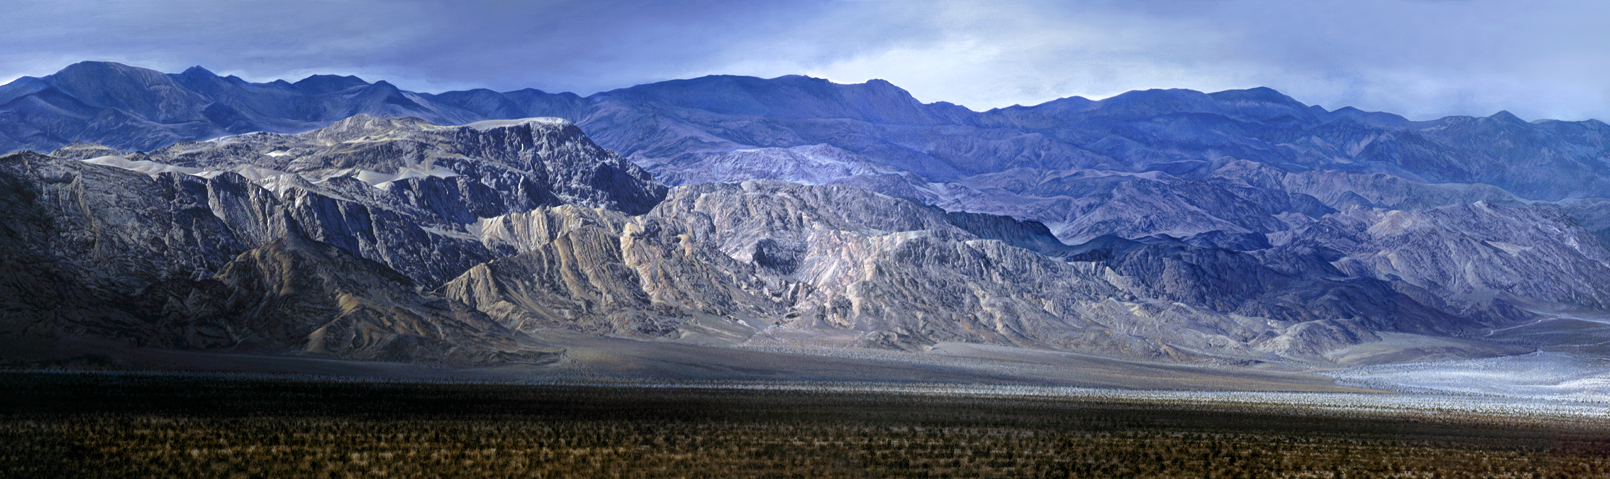 Death Valley (American Landscape I)